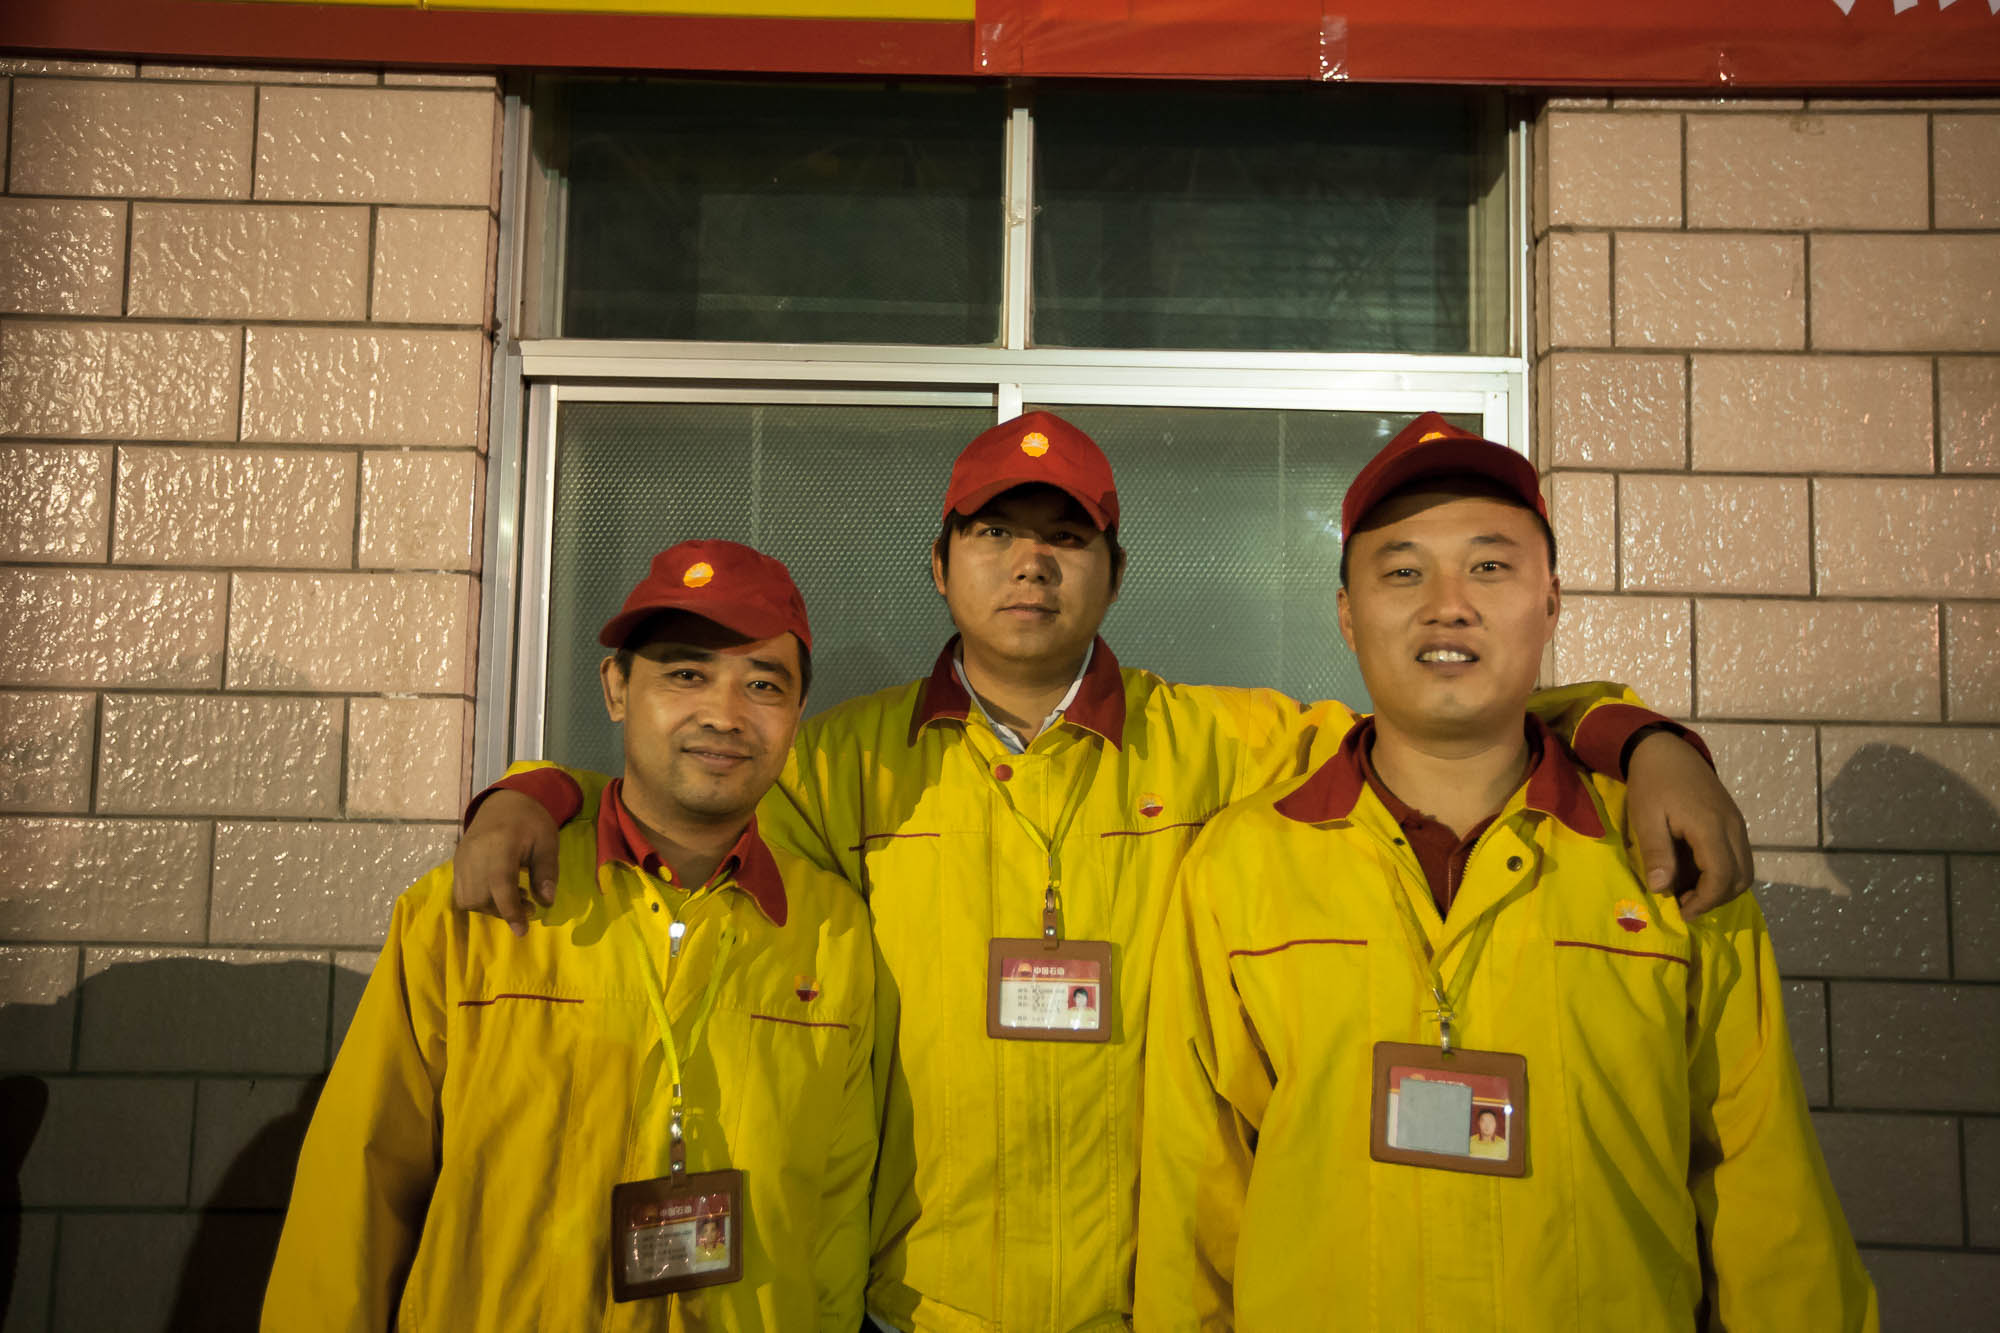 These guys from the gas station at Turpan let me use their restroom when it was really urgent